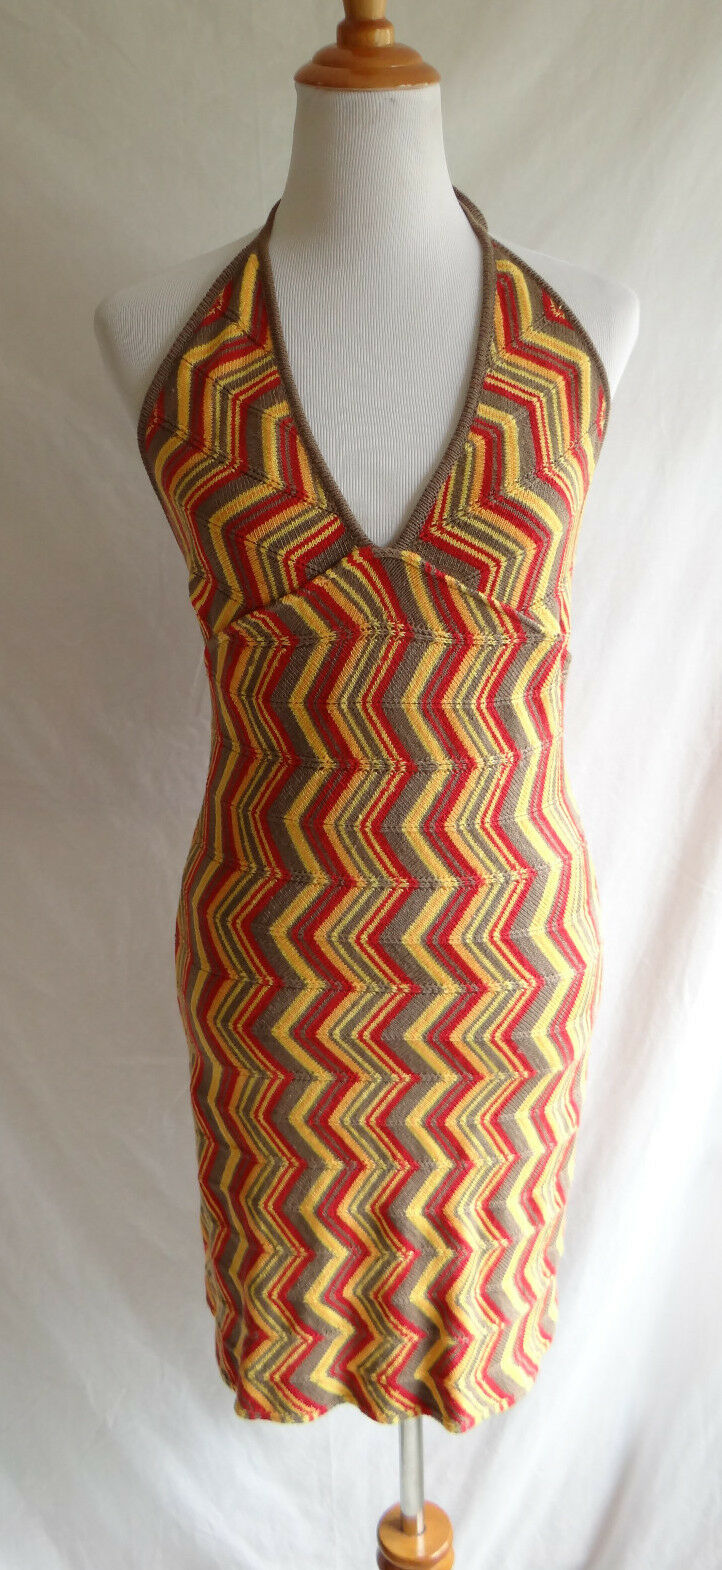 Italian Designer Victoria Gallucci Zig-Zag Knit Chevron Sweater XS Halter Dress